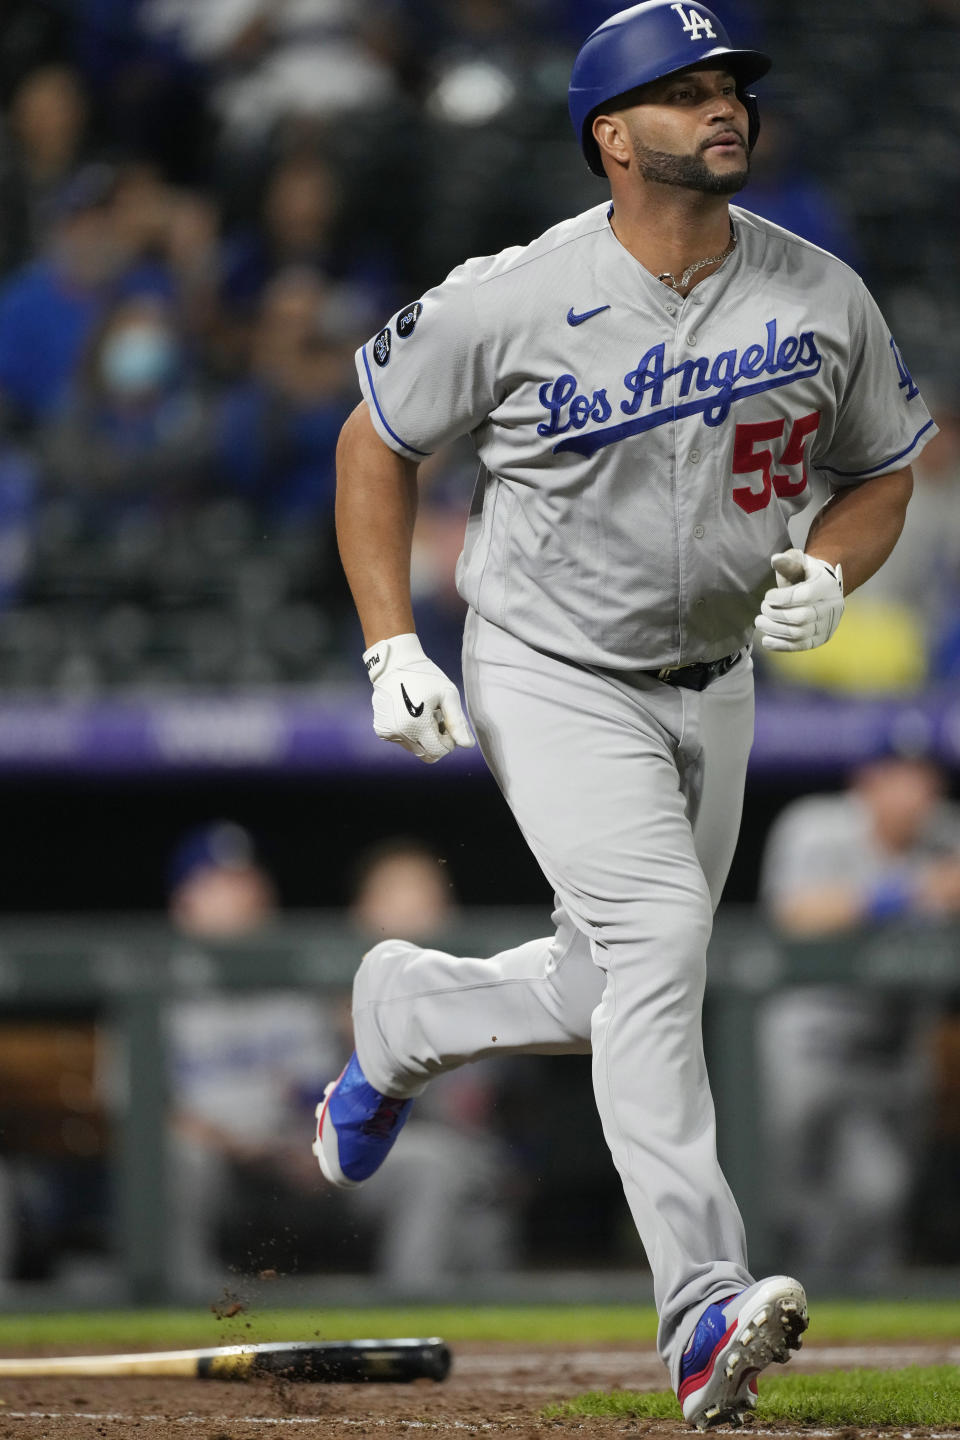 Los Angeles Dodgers pinch-hitter Albert Pujols runs up the first-base line after popping out against Colorado Rockies relief pitcher Lucas Gilbreath in the ninth inning of a baseball game Wednesday, Sept. 22, 2021, in Denver. The Rockies won 10-5. (AP Photo/David Zalubowski)